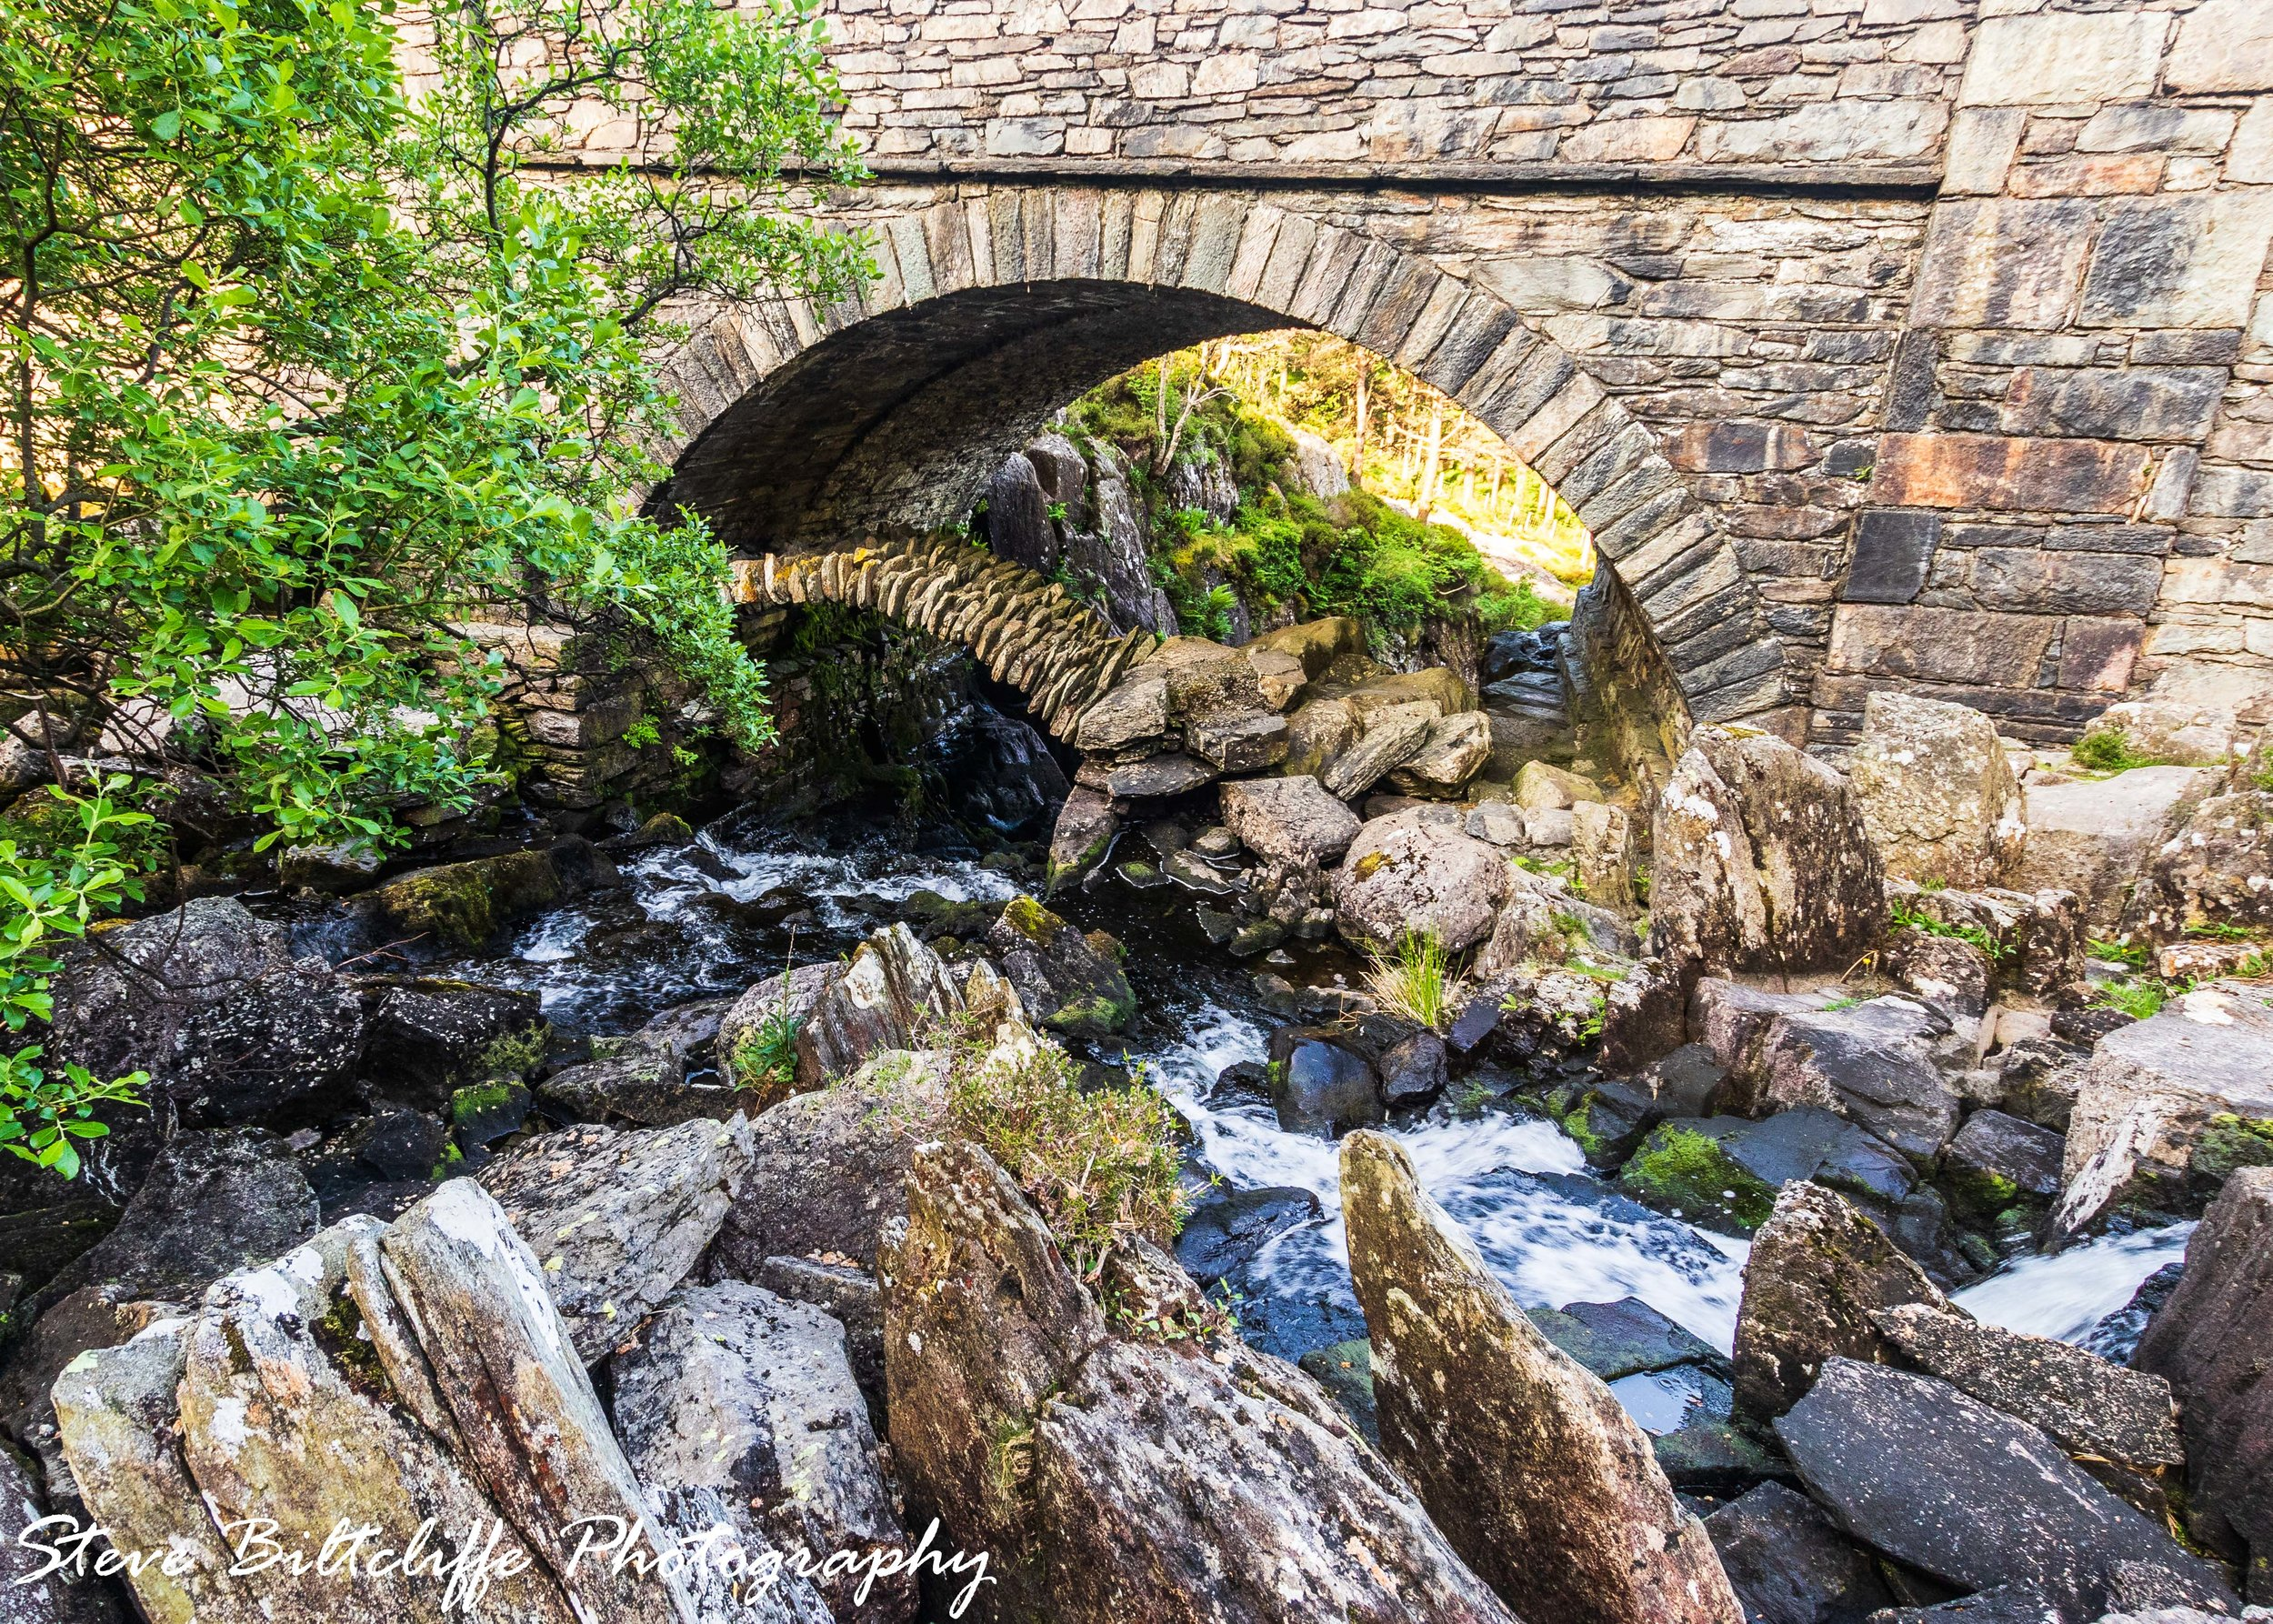 Ogwen Falls - The Packhorse Bridge